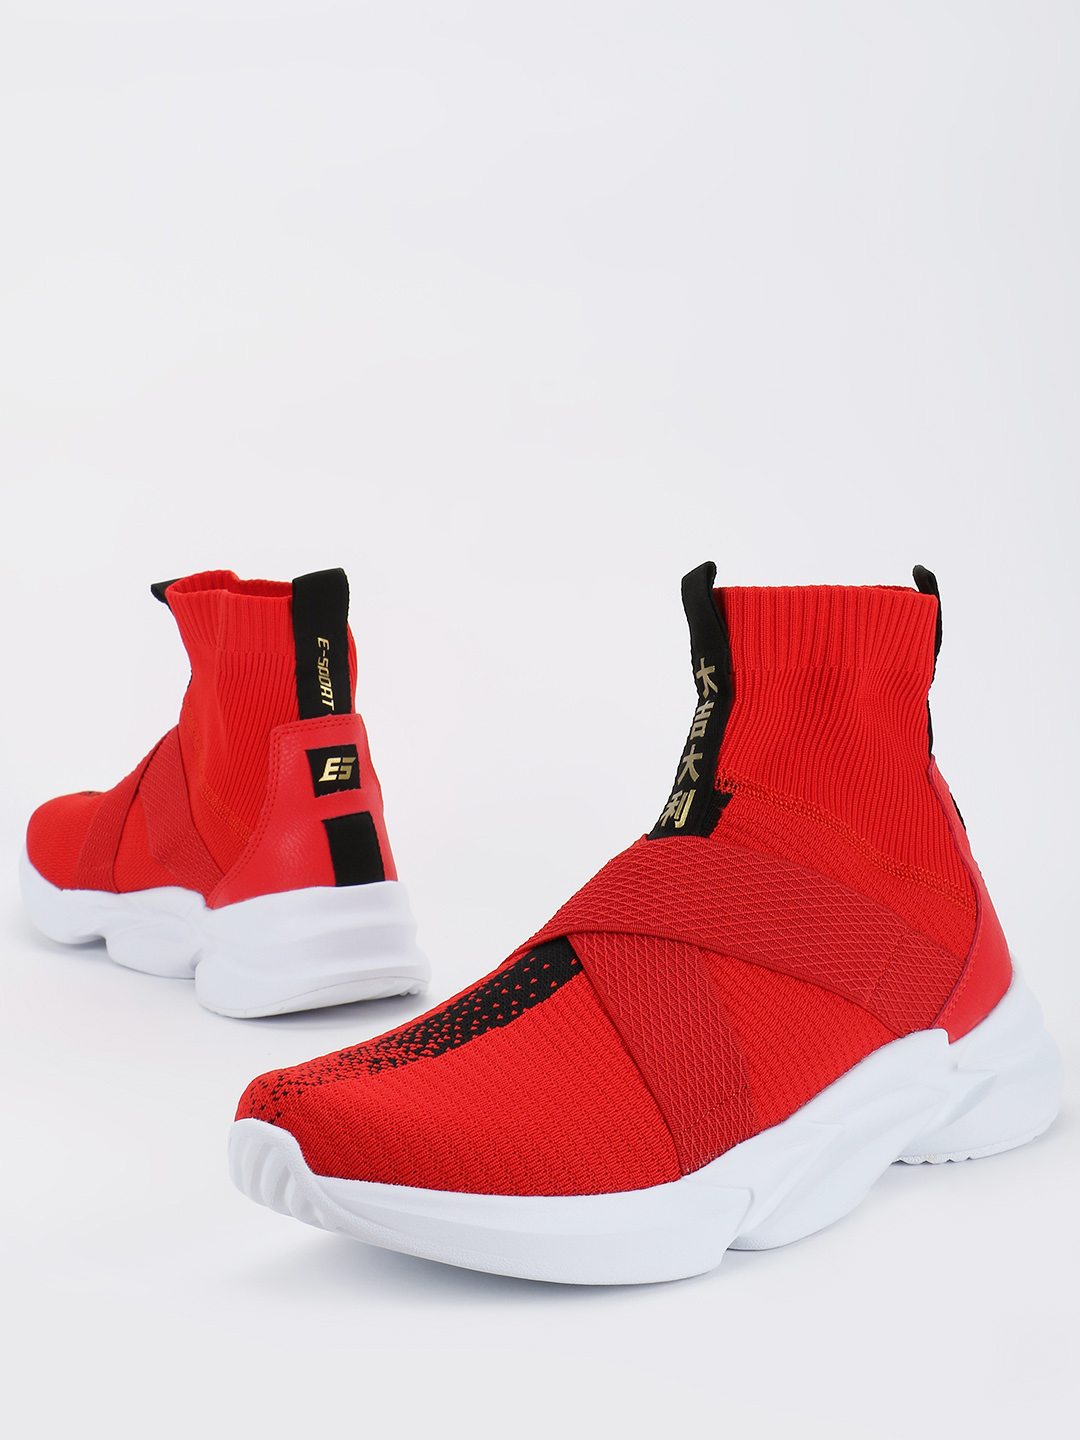 361 Degree Red Knitted Contrast Tape Sockliner Trainers 1